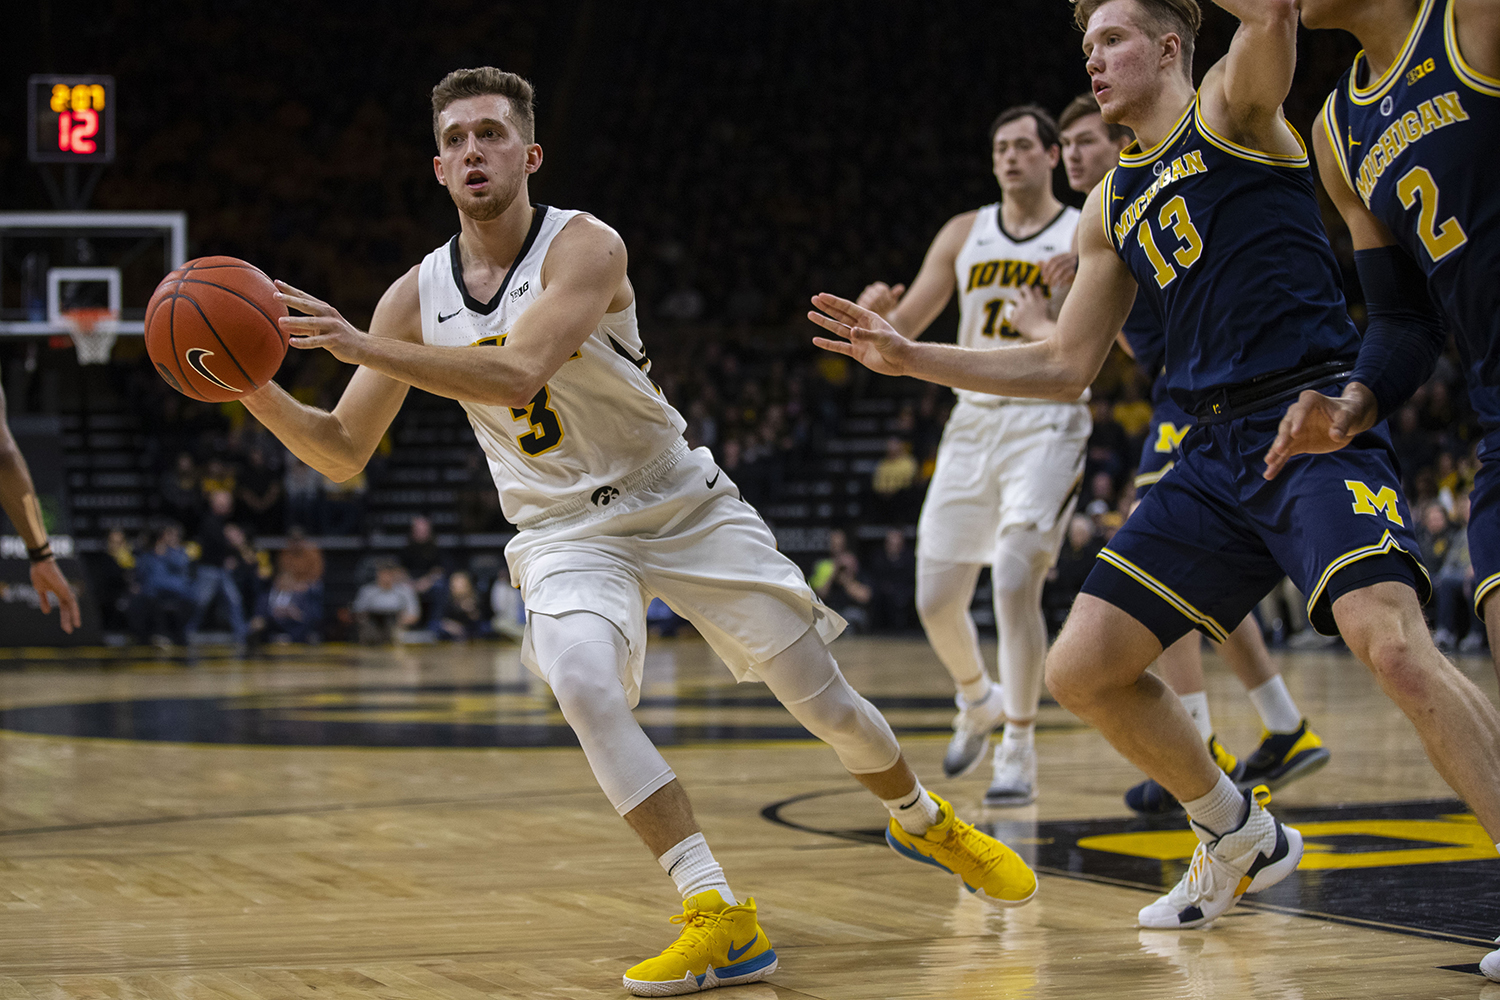 Iowa+guard+Jordan+Bohannon+passes+the+ball+during+the+Iowa%2FMichigan+men%27s+basketball+game+at+Carver-Hawkeye+Arena+on+Friday%2C+February+1%2C+2019.+The+Hawkeyes+took+down+the+No.+5+ranked+Wolverines%2C+74-59.+